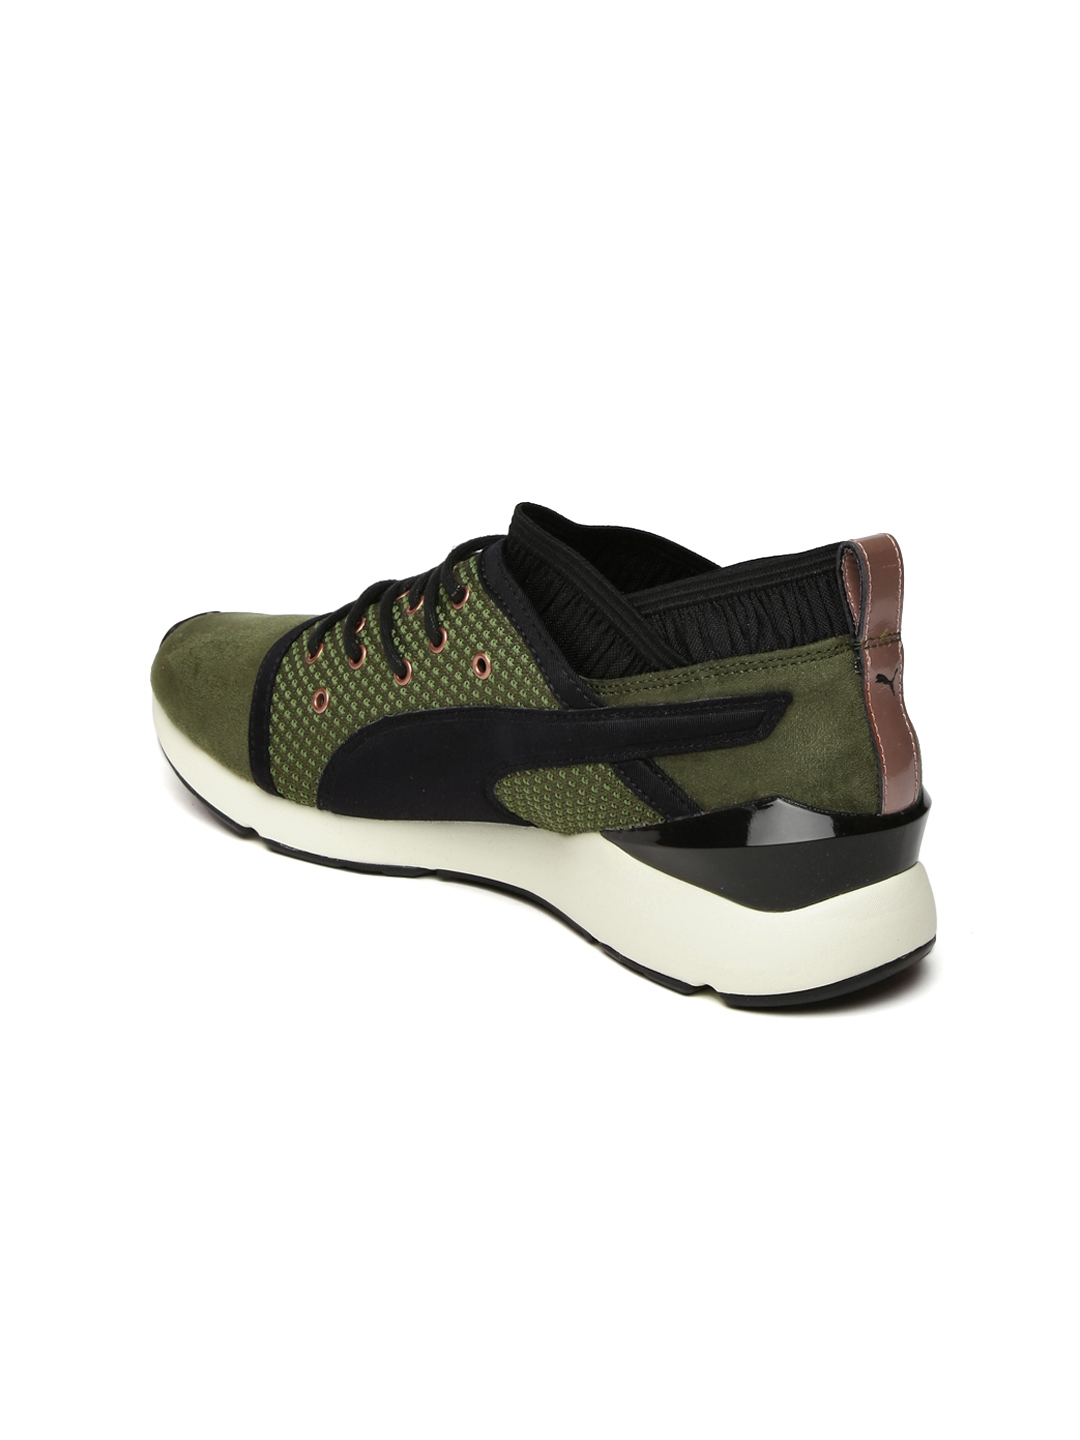 08b7f99f31af Buy Puma Women Olive Green Pearl VR Sneakers - Casual Shoes for ...